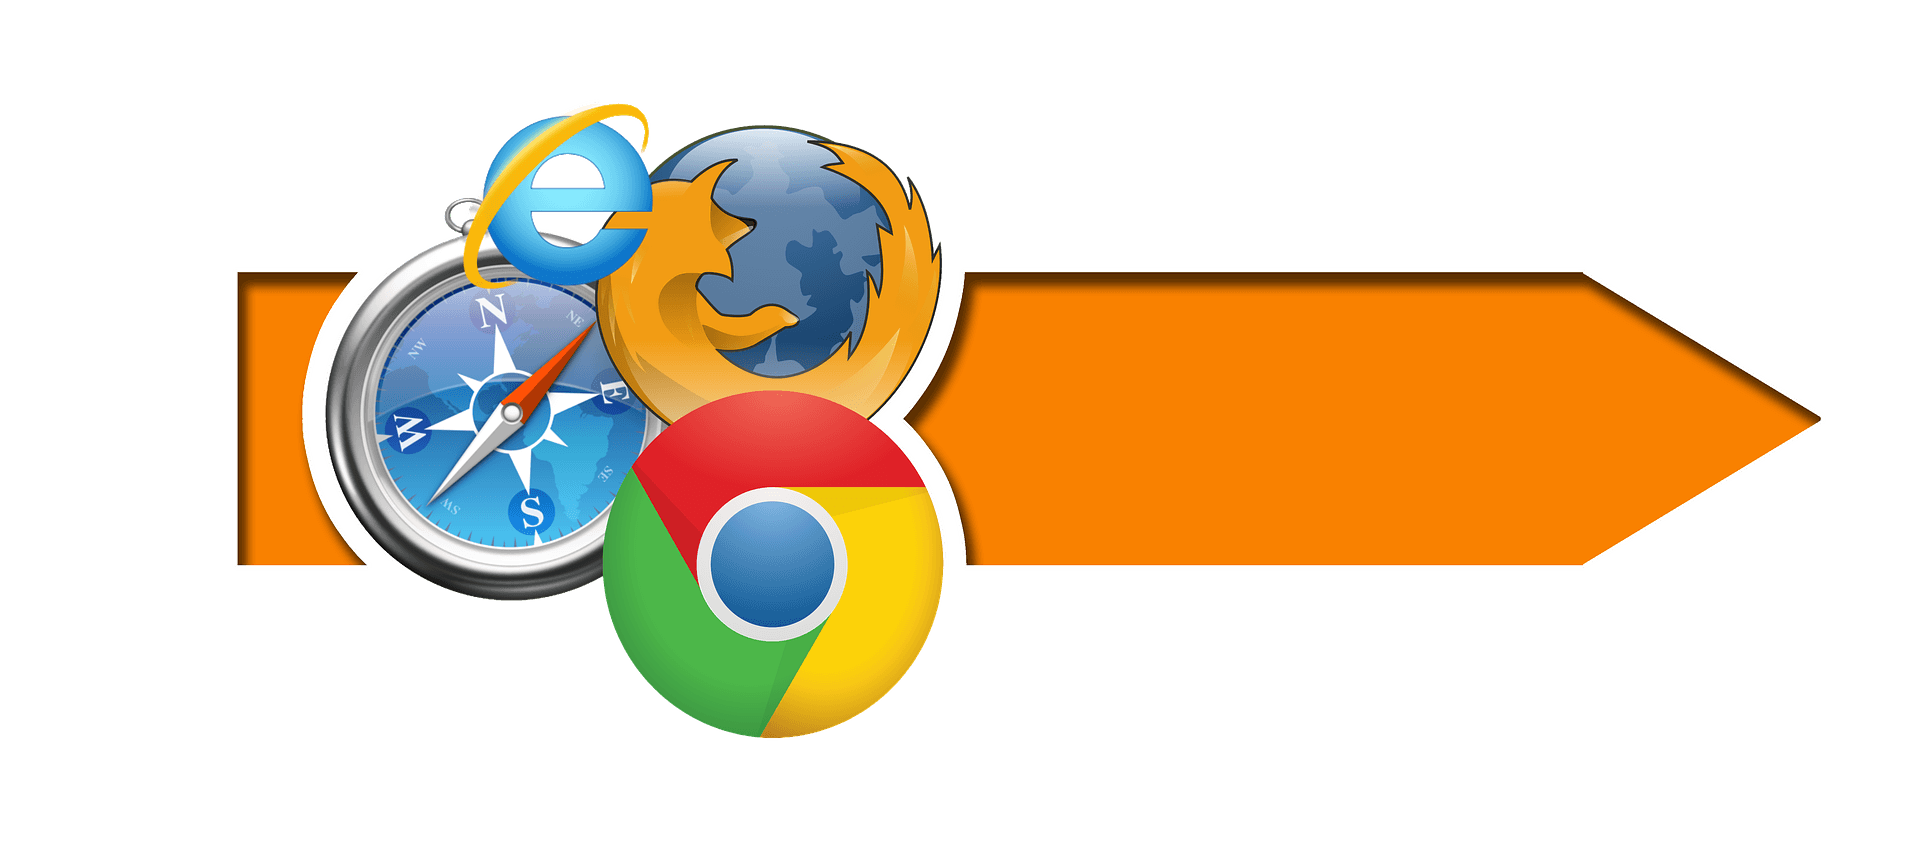 logo of four different browsers